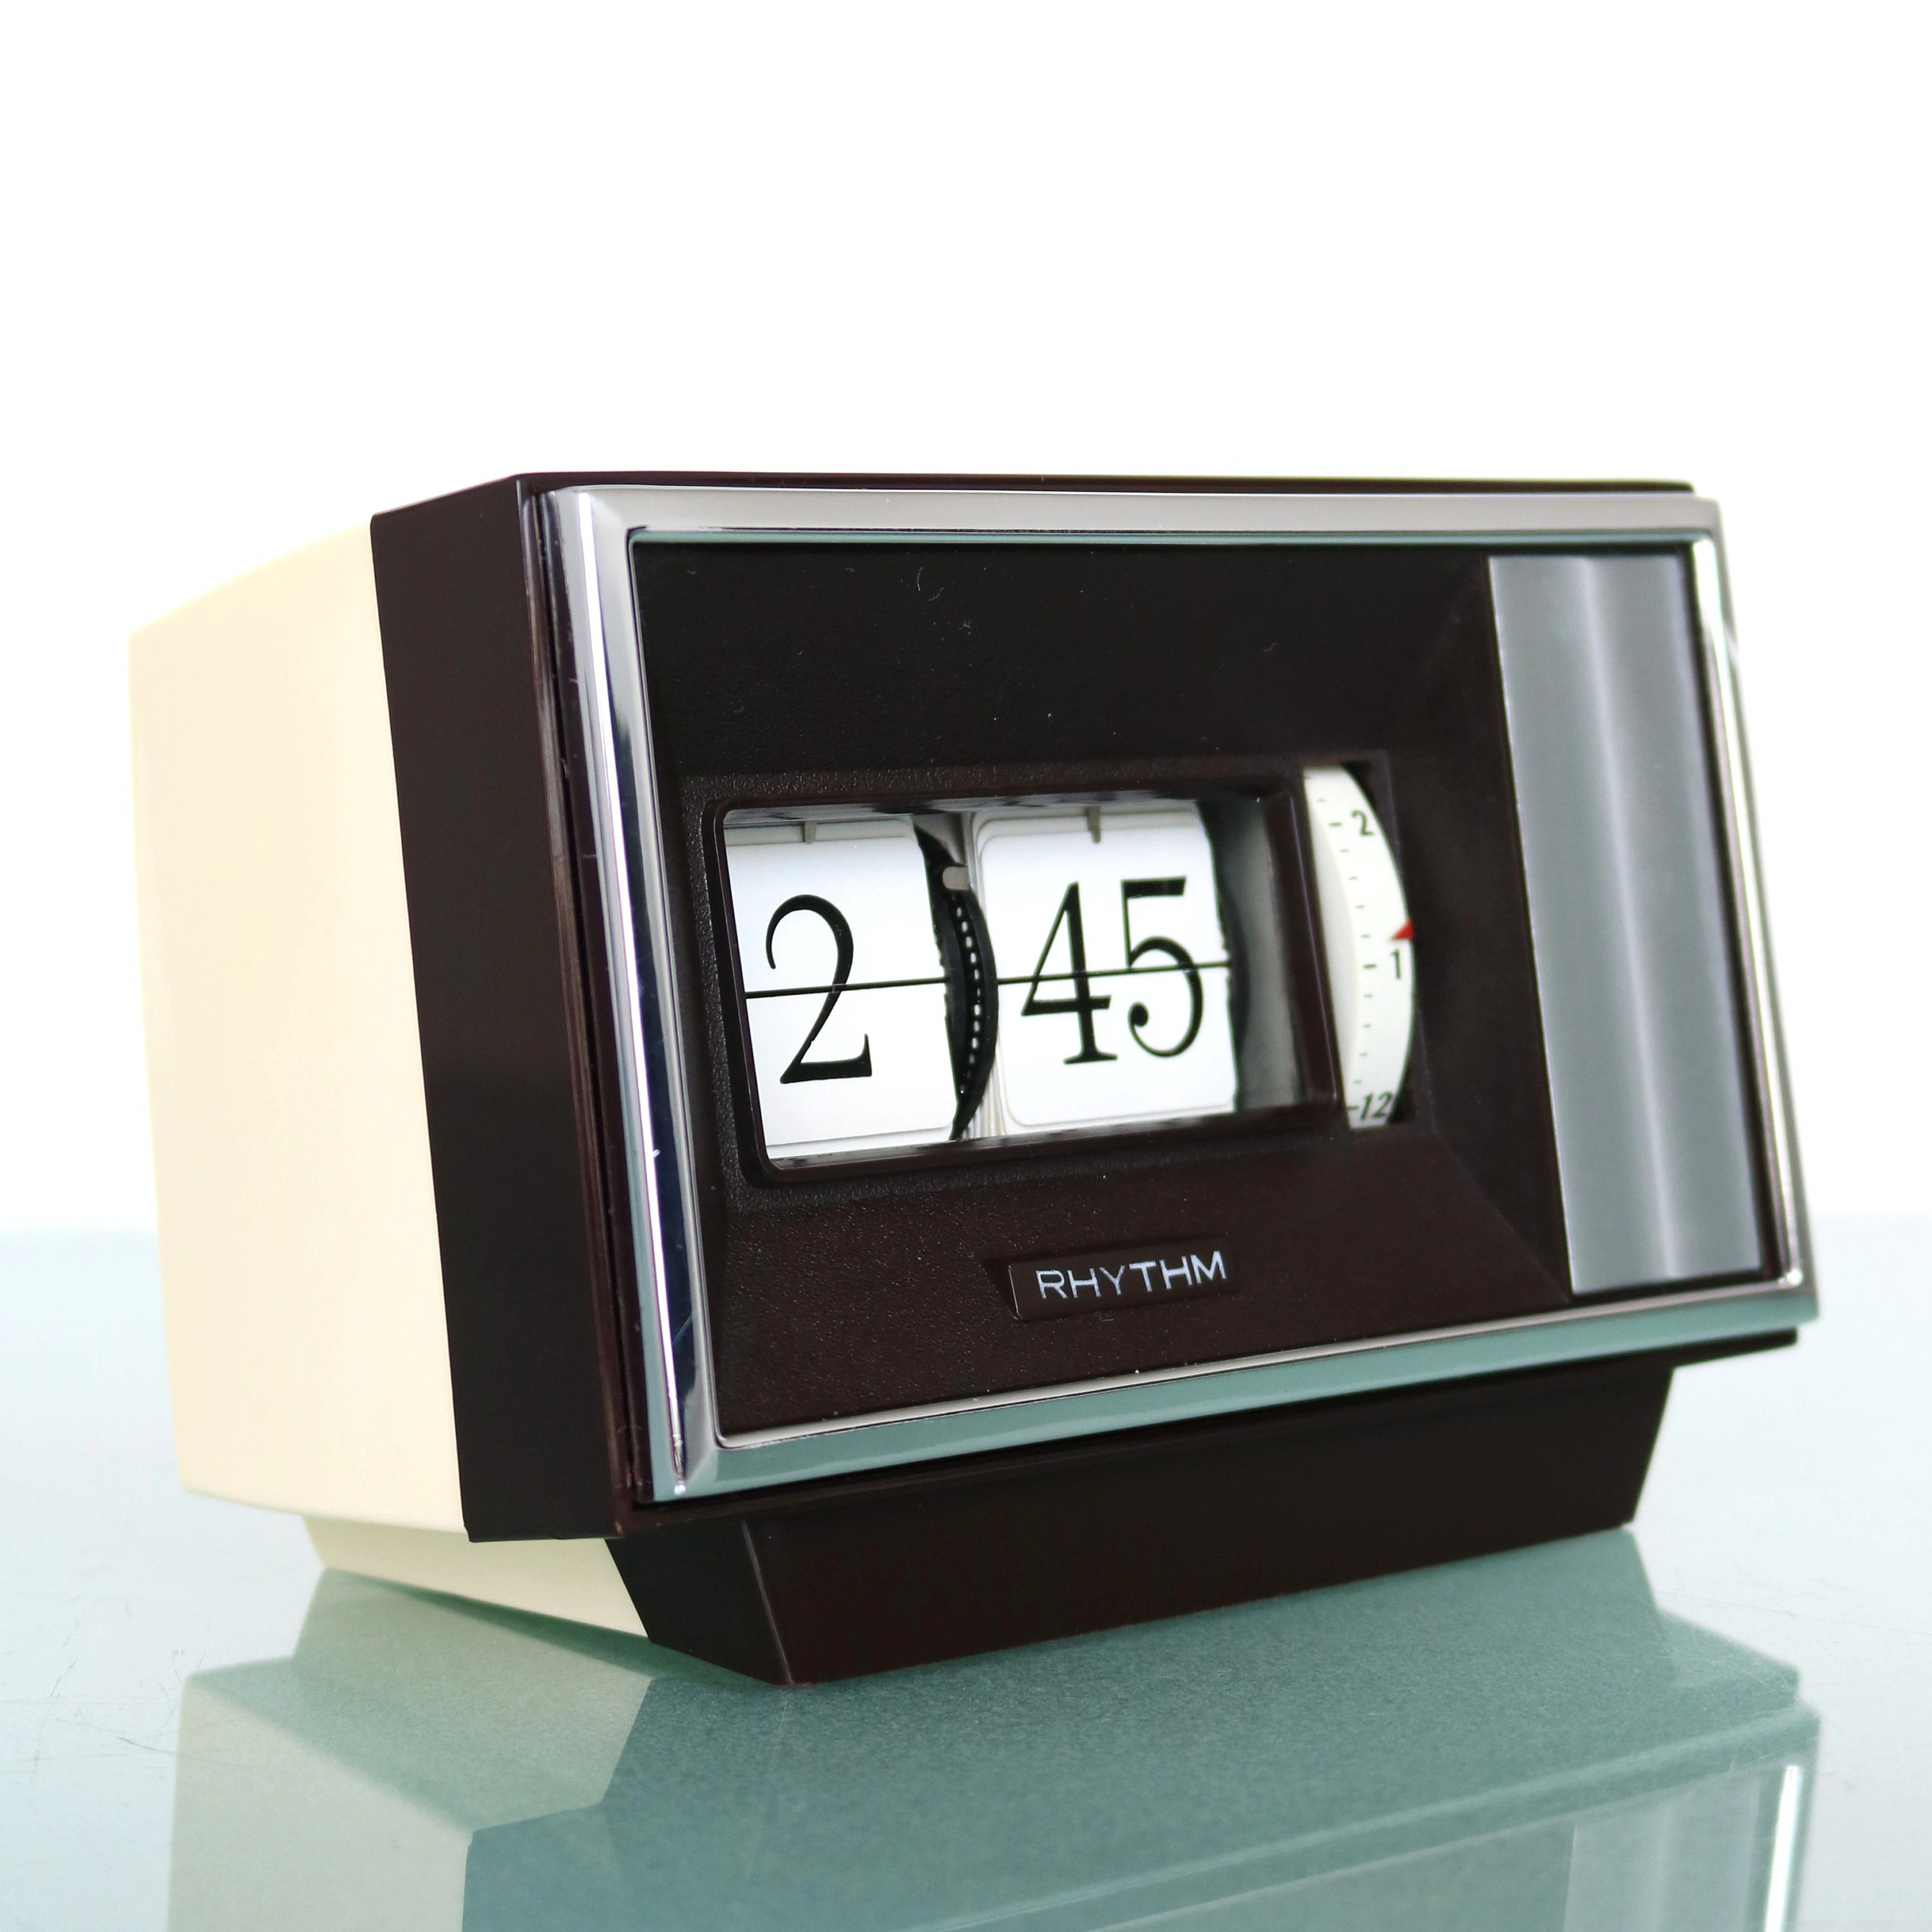 Retro Flip Alarm Clock Rhythm No 16506 Flip Clock Wind Up Mantel Alarm Space Age Retro Japan Vintage Winding Alarm Clock Offered With One Years Guarantee